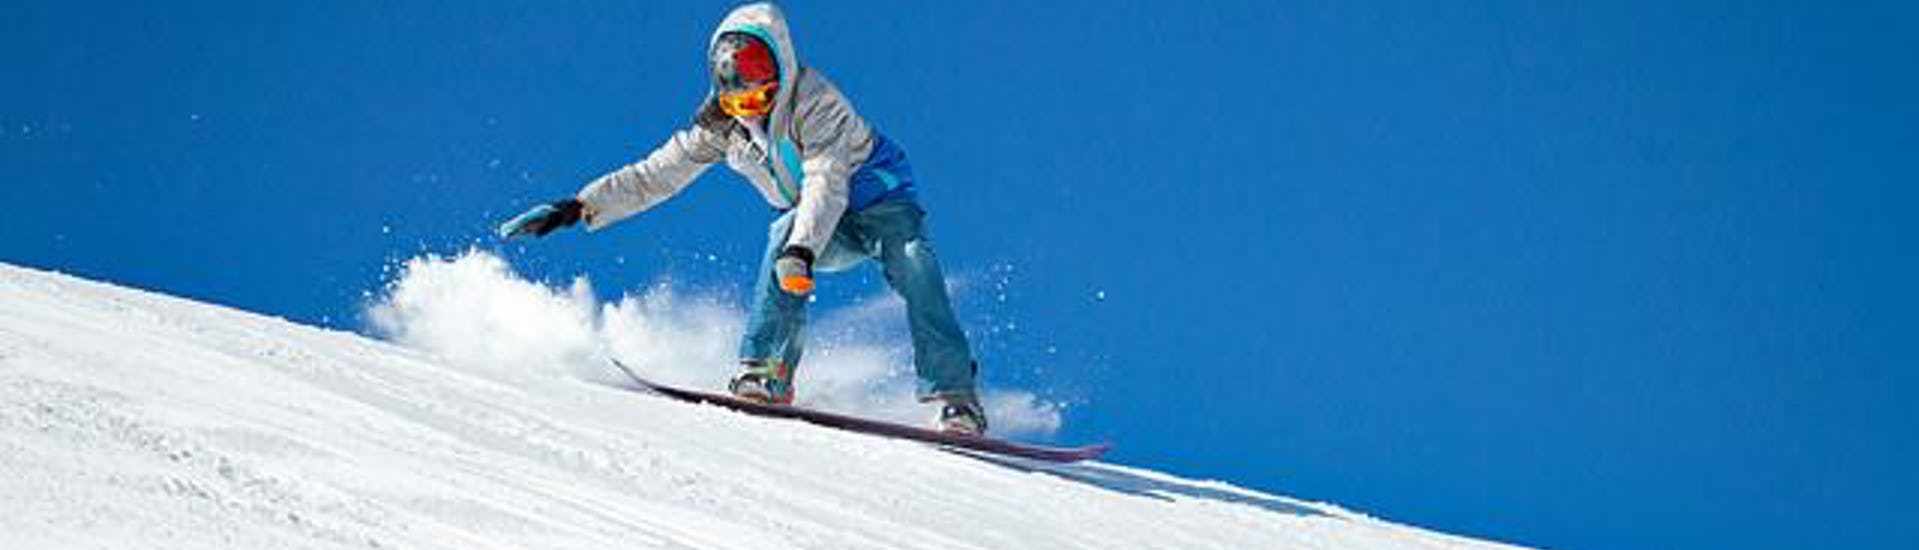 Snowboard Lessons for Kids (8-12 years) - All Levels